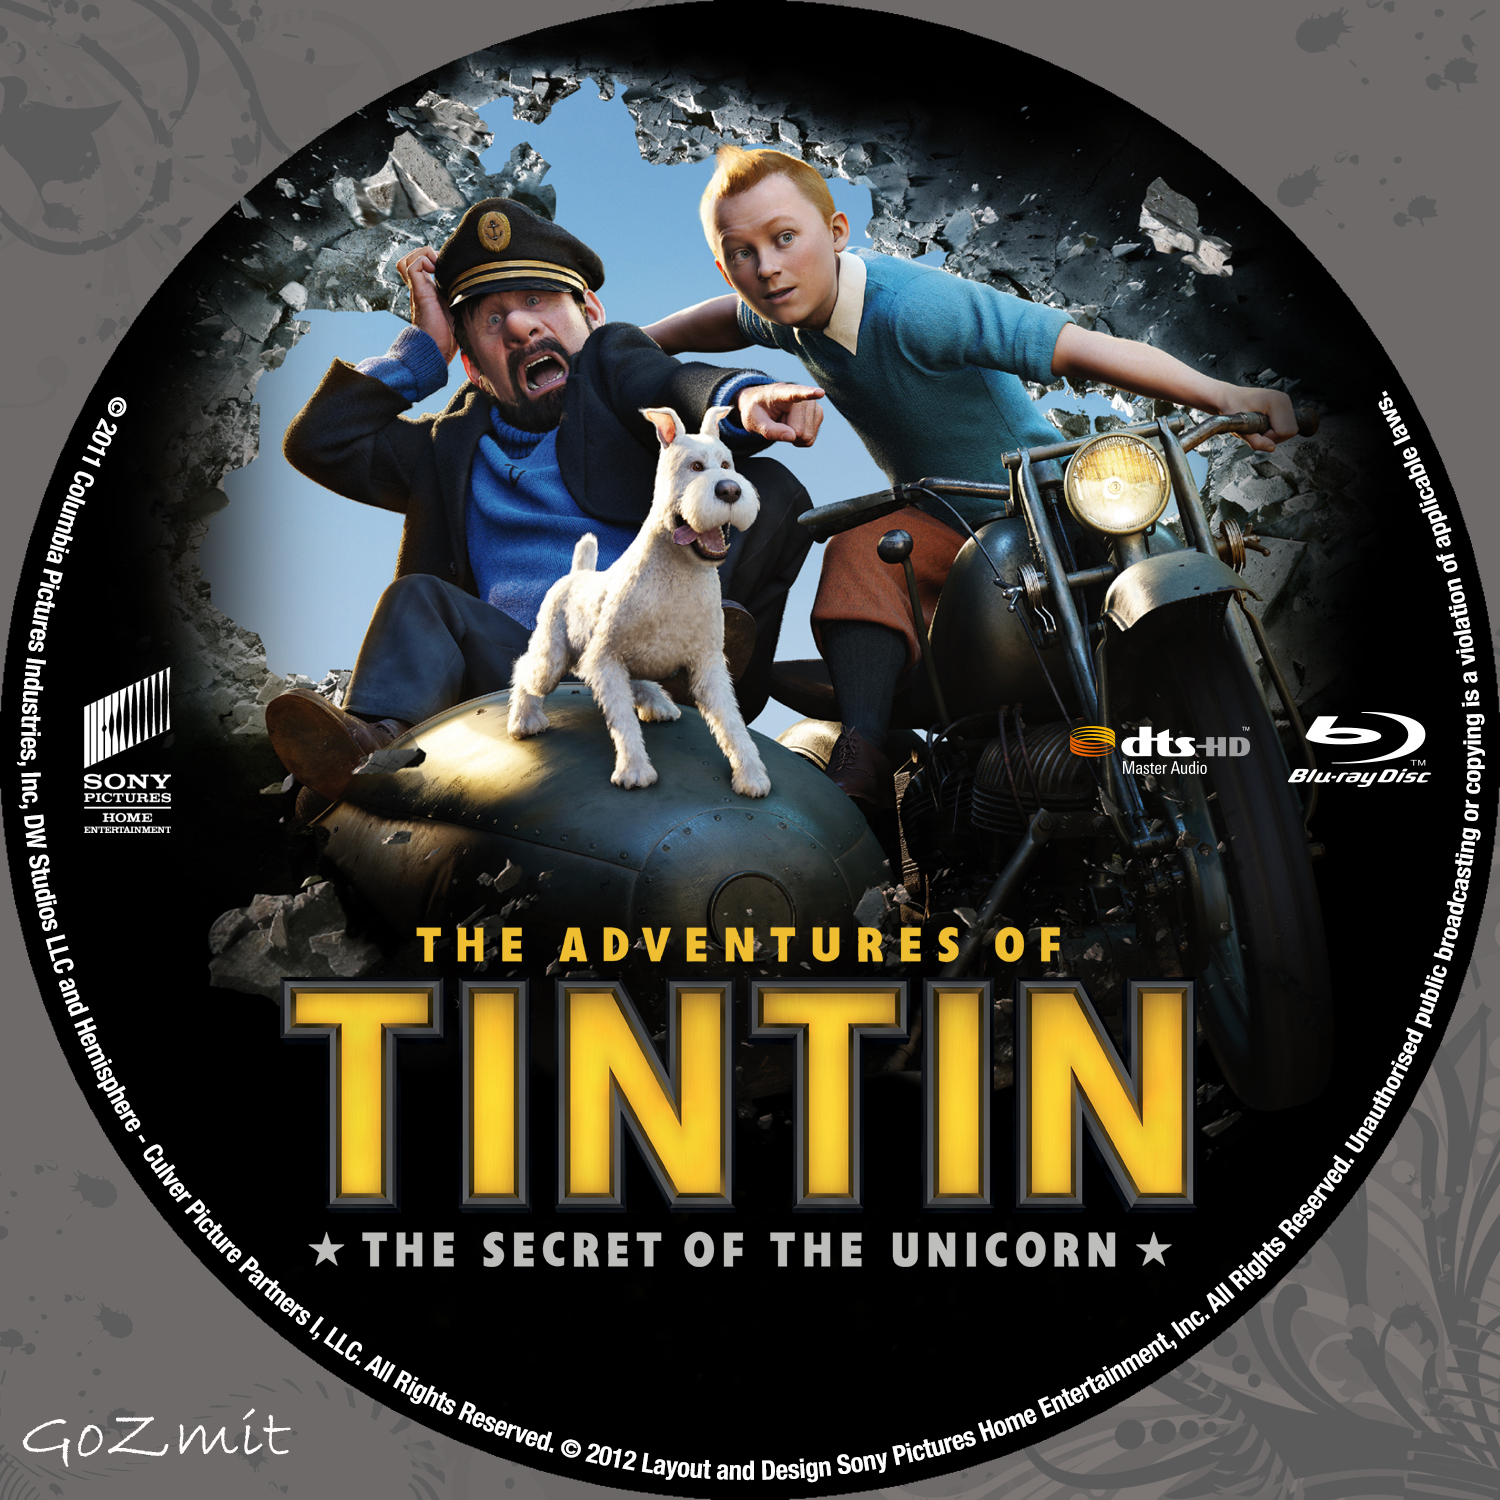 the adventures of tintin full movie download